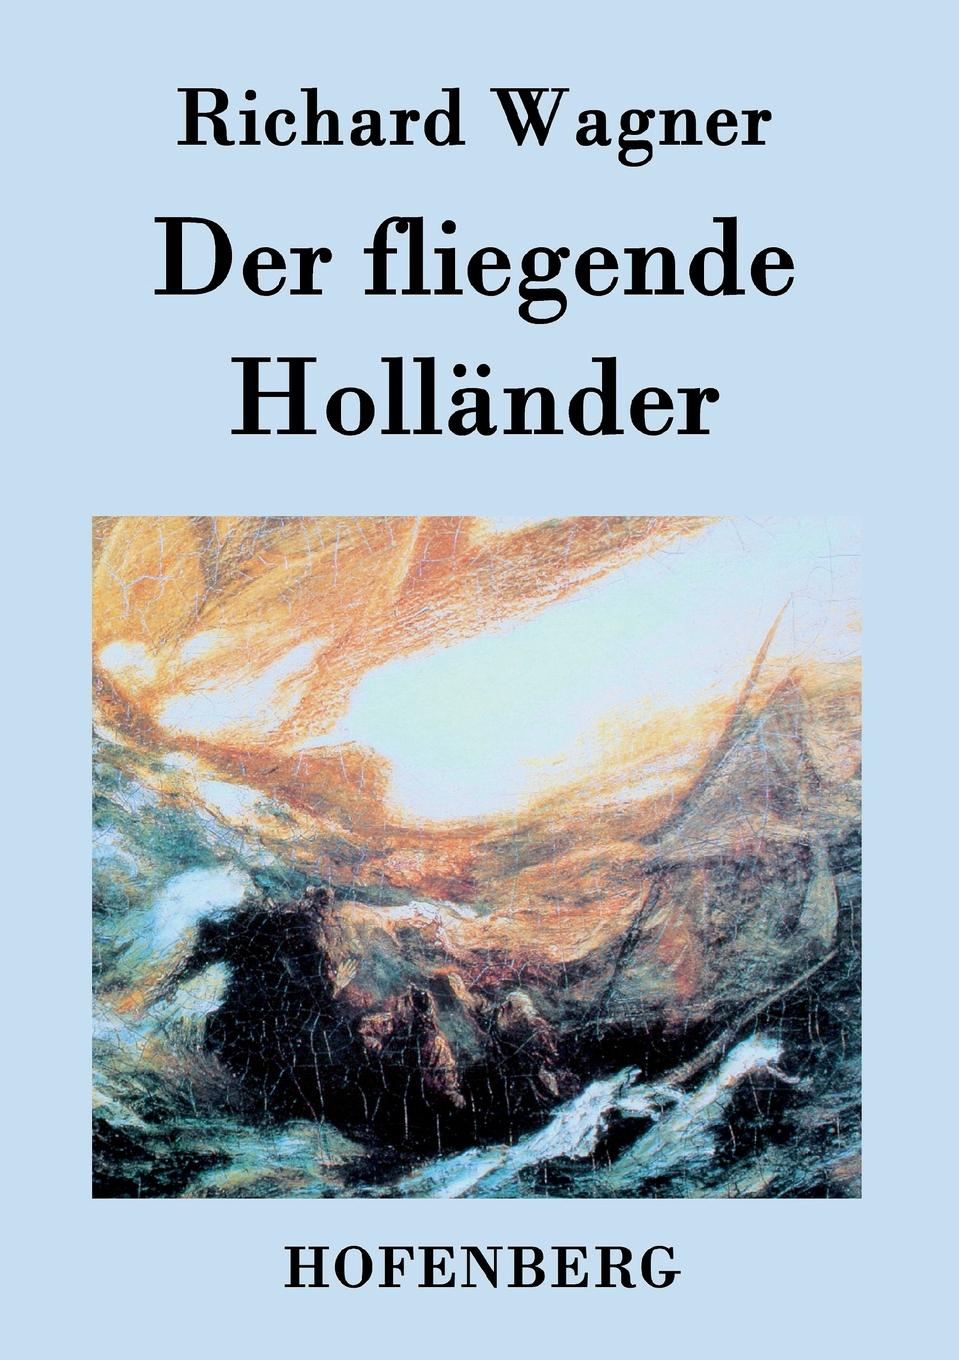 Richard Wagner Der fliegende Hollander wagner der fliegende hollander